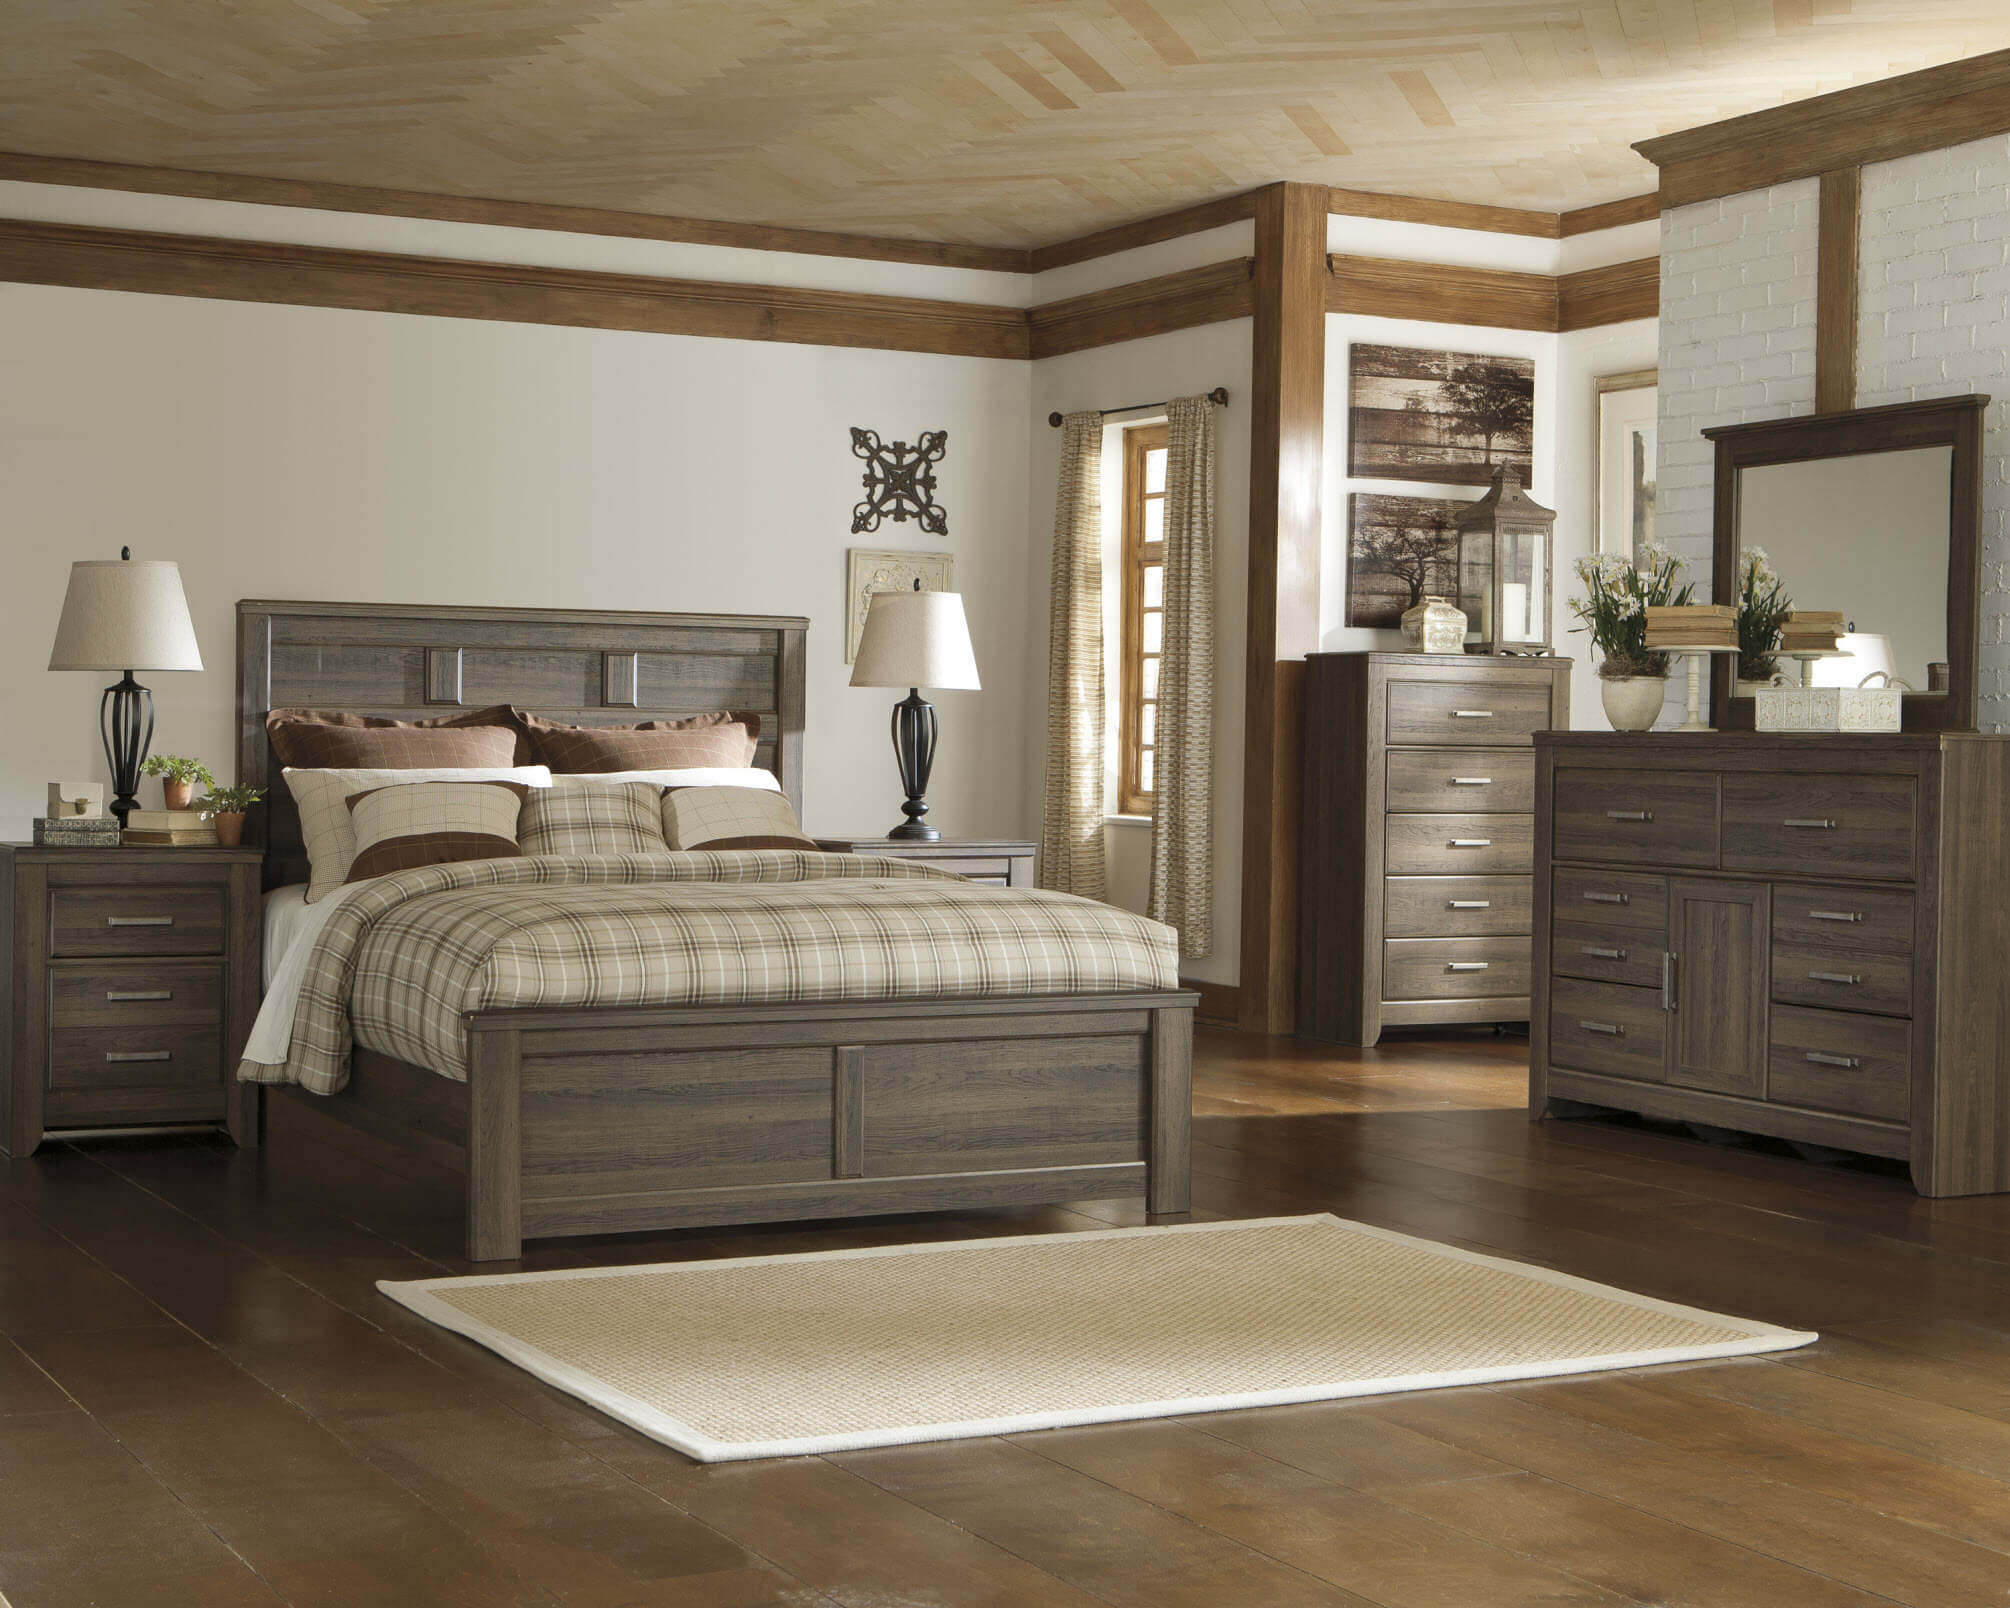 Juarano Ashley Bedroom Set Bedroom Furniture Sets